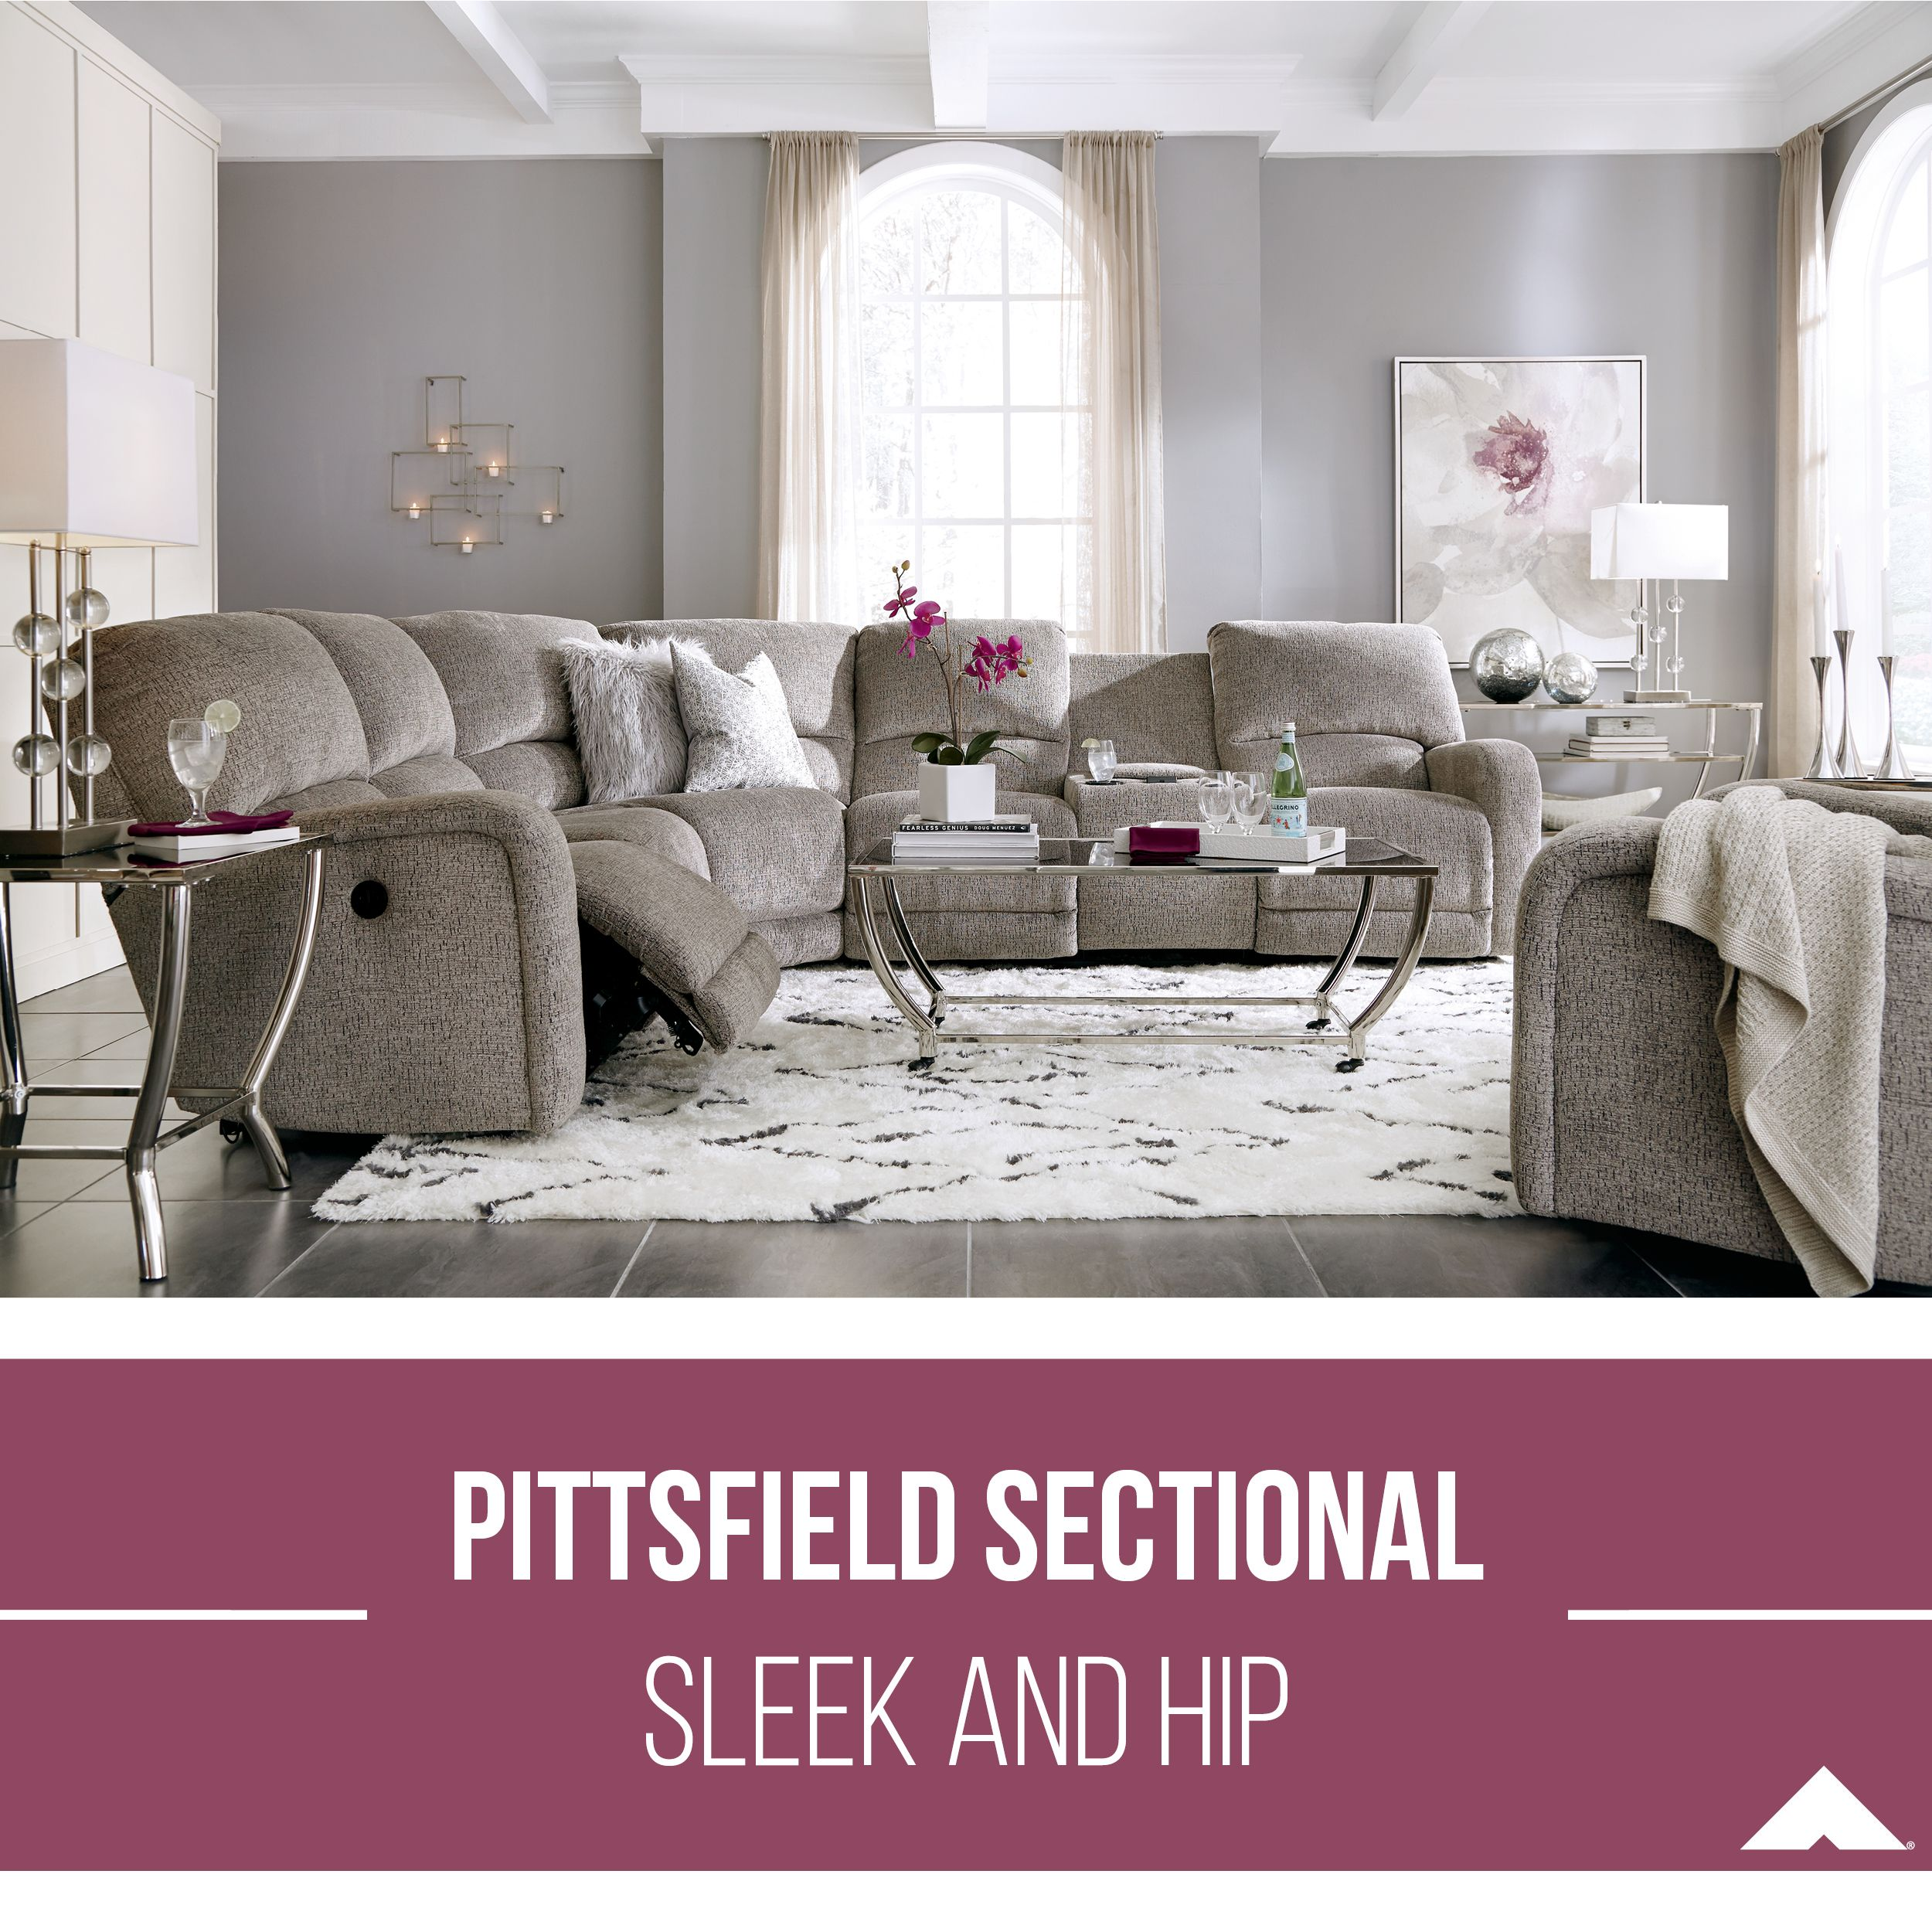 Pittsfield Fossil Sectional By Ashley Furniture Ashleyfurniture Homedecor Livingroom Livingroomdecor Livingroomfurniture Living Room Decor Living Room Furniture Family Room